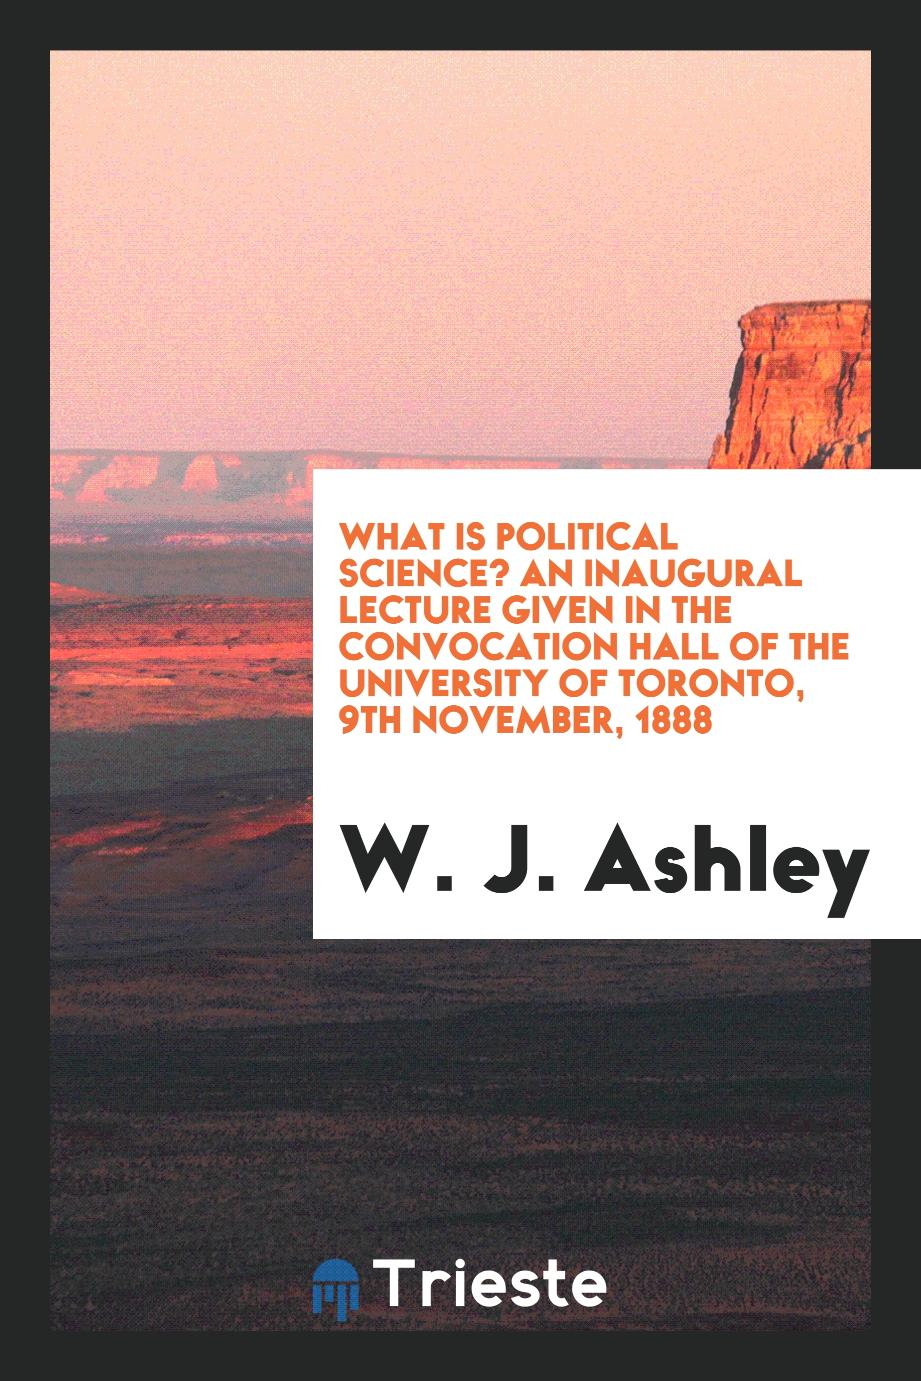 What is Political Science? An Inaugural Lecture Given in the Convocation Hall of the University of Toronto, 9th November, 1888